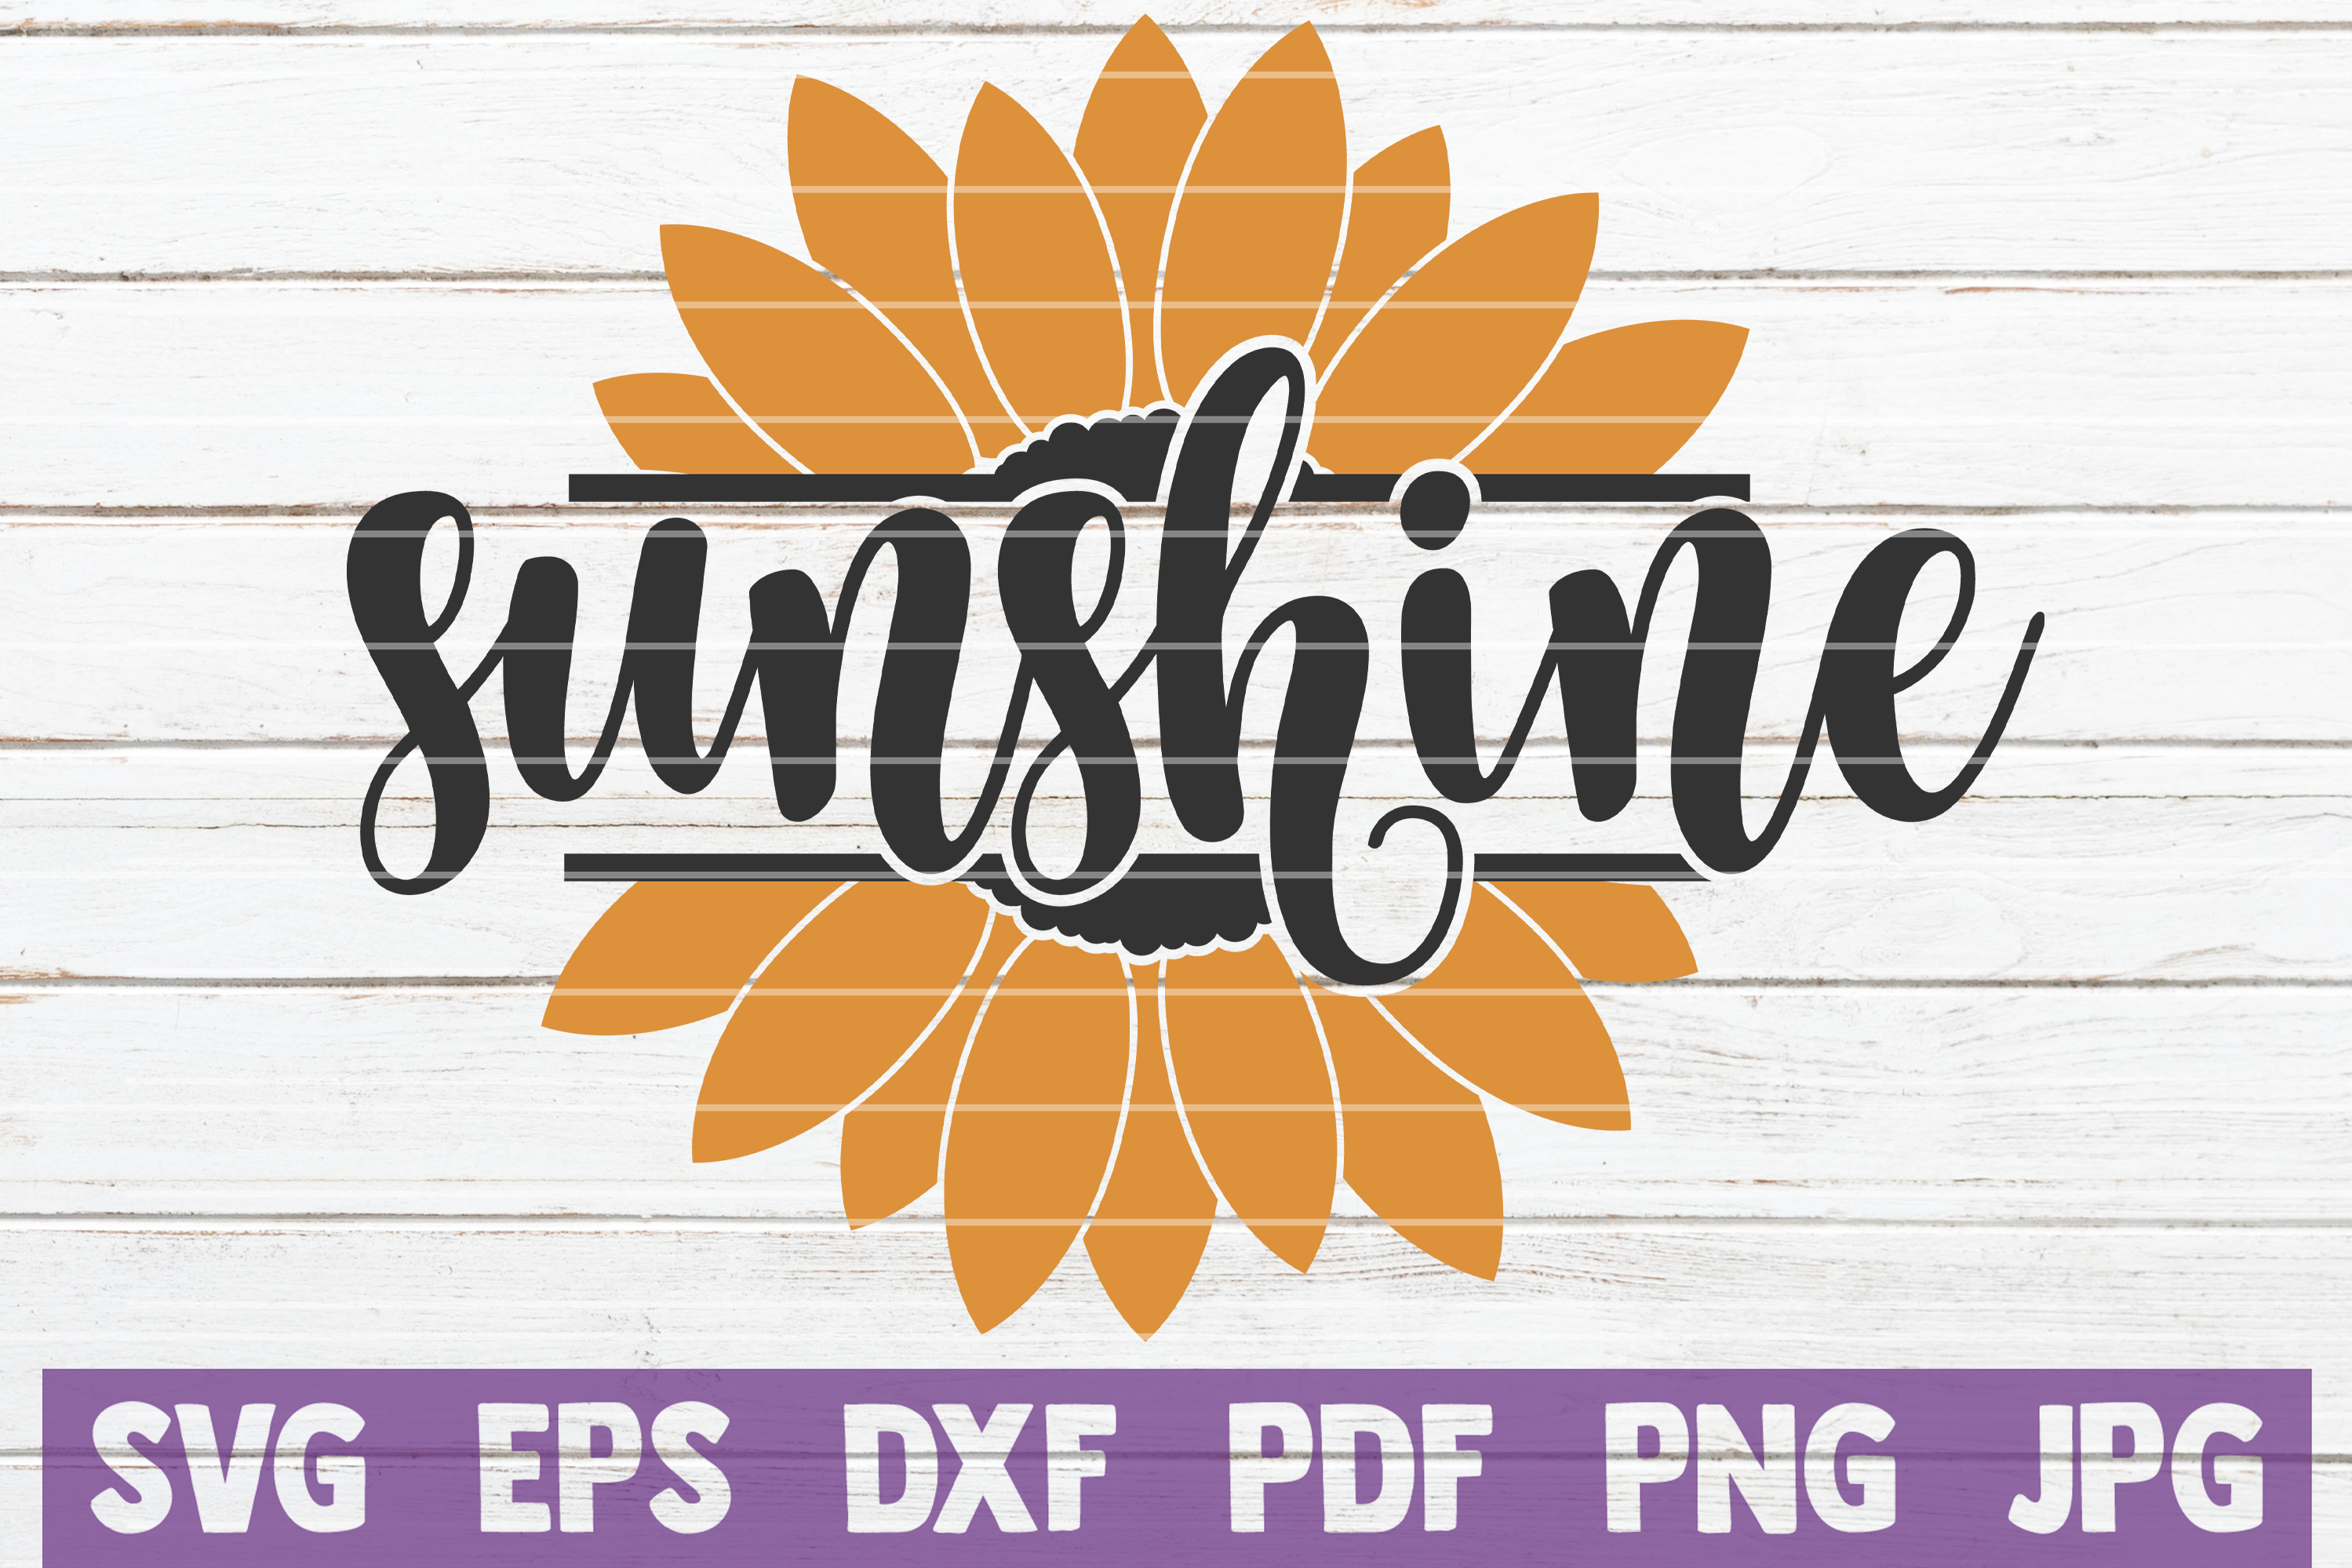 Download Free Sunflower Sunshine Graphic By Mintymarshmallows Creative Fabrica for Cricut Explore, Silhouette and other cutting machines.